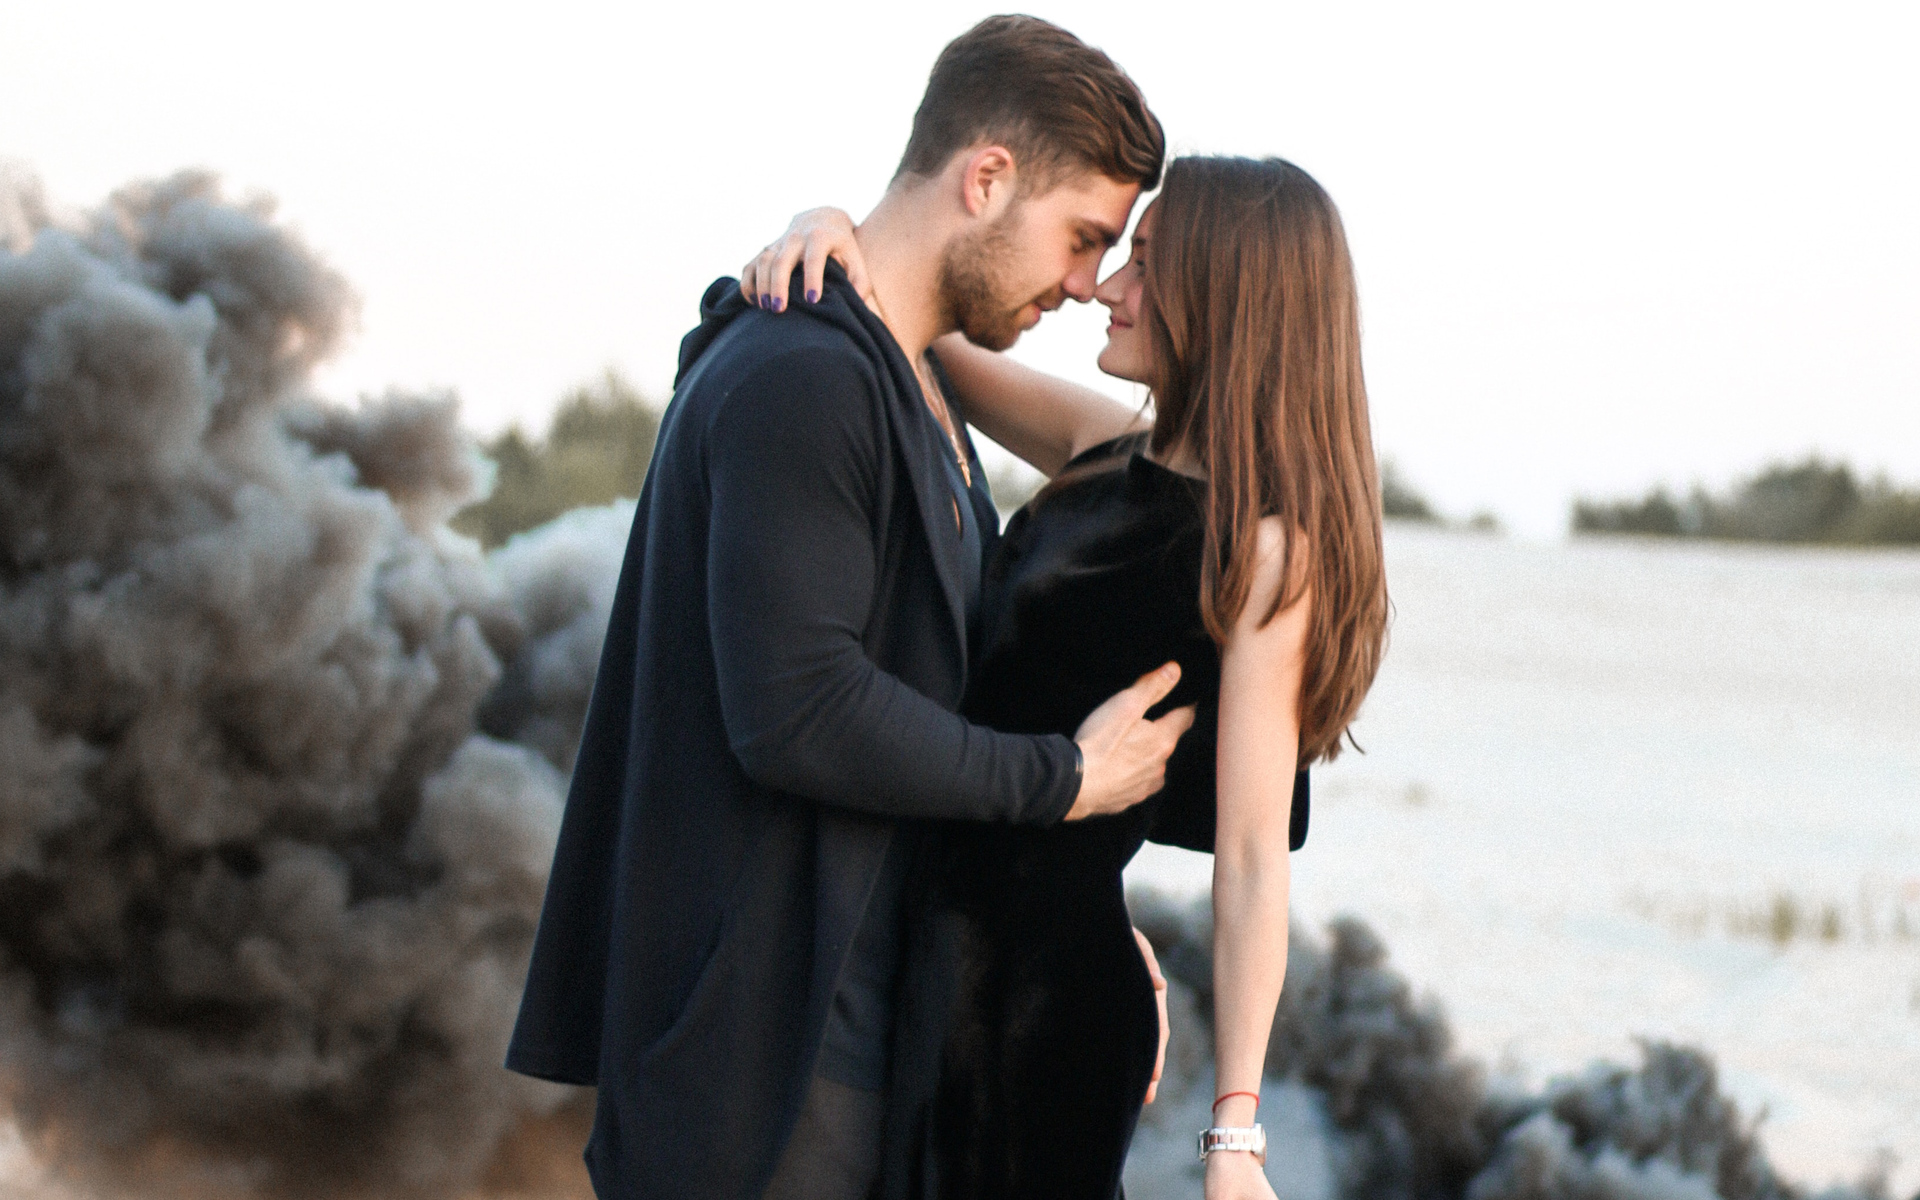 cute-couple-black-clothing-beach-side-iy.jpg